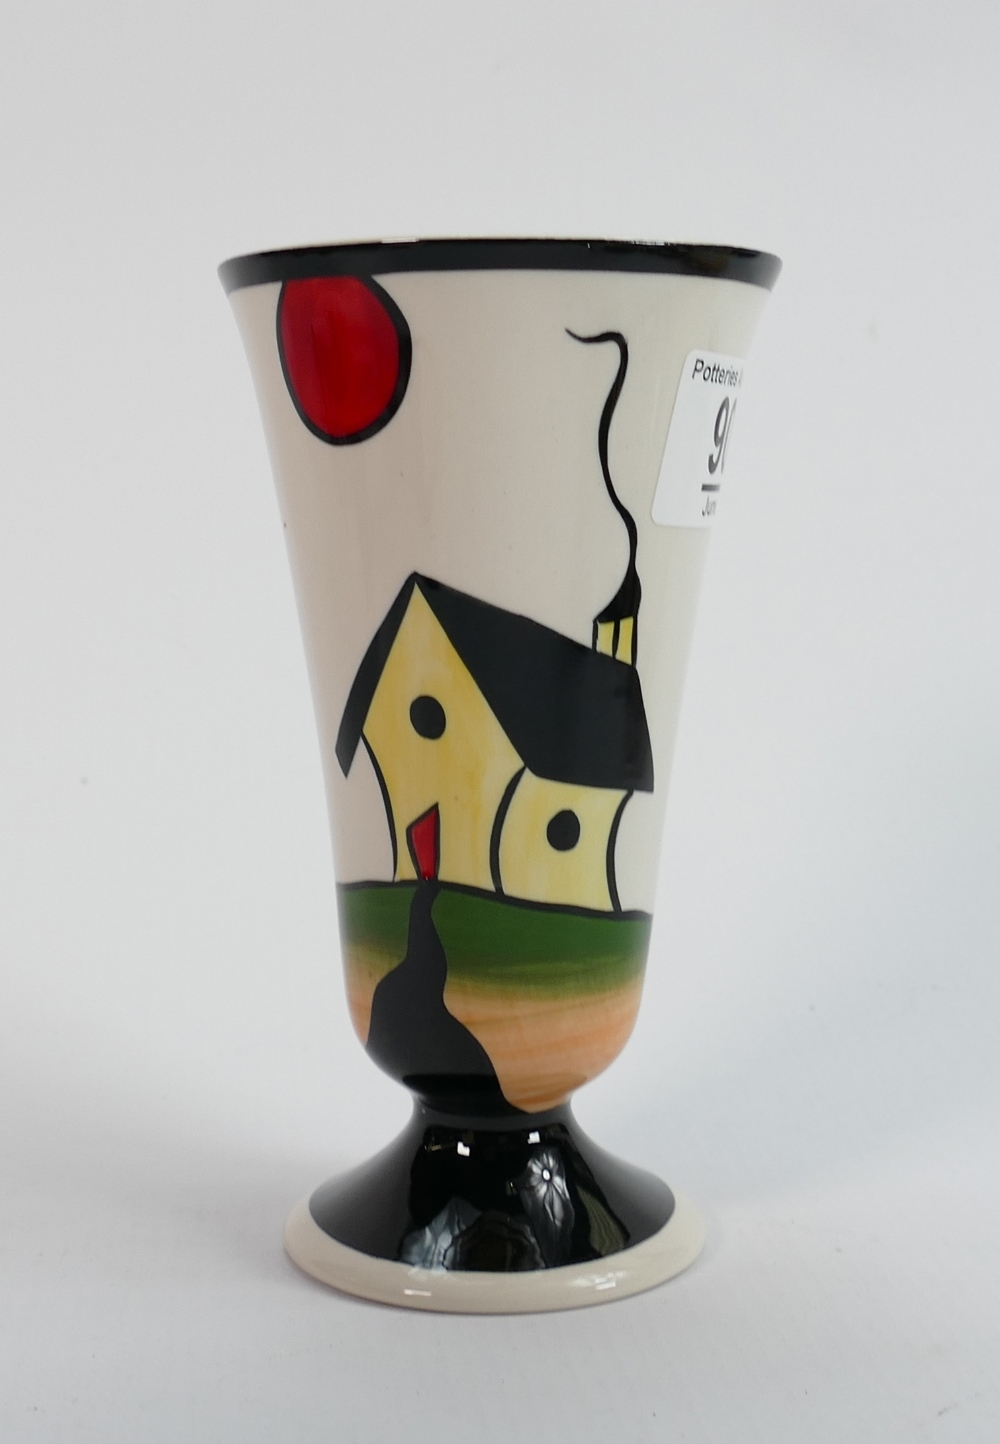 Lorna Bailey vase 1/1 limited edition of one: 14.5 cm.